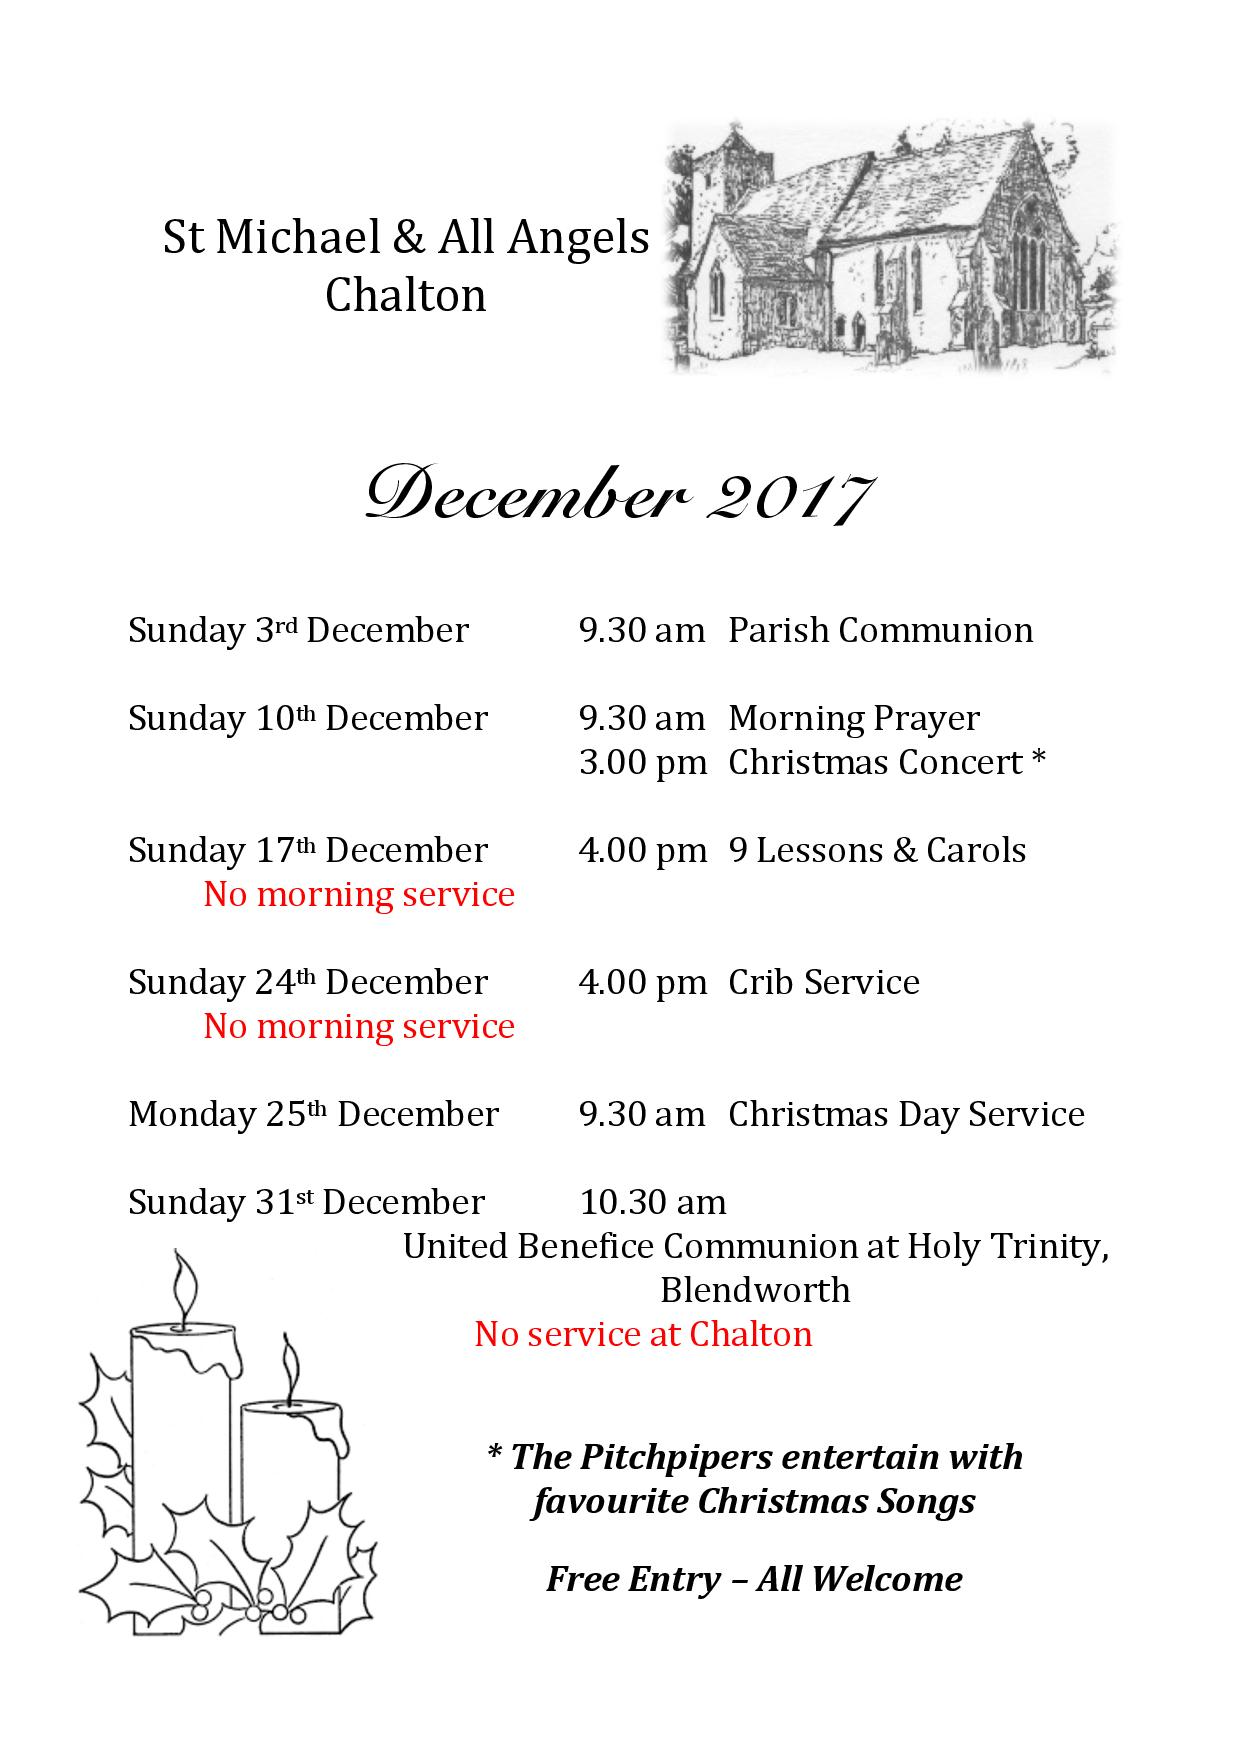 Christmas Services at St Michael and All Angels  Church, Chalton